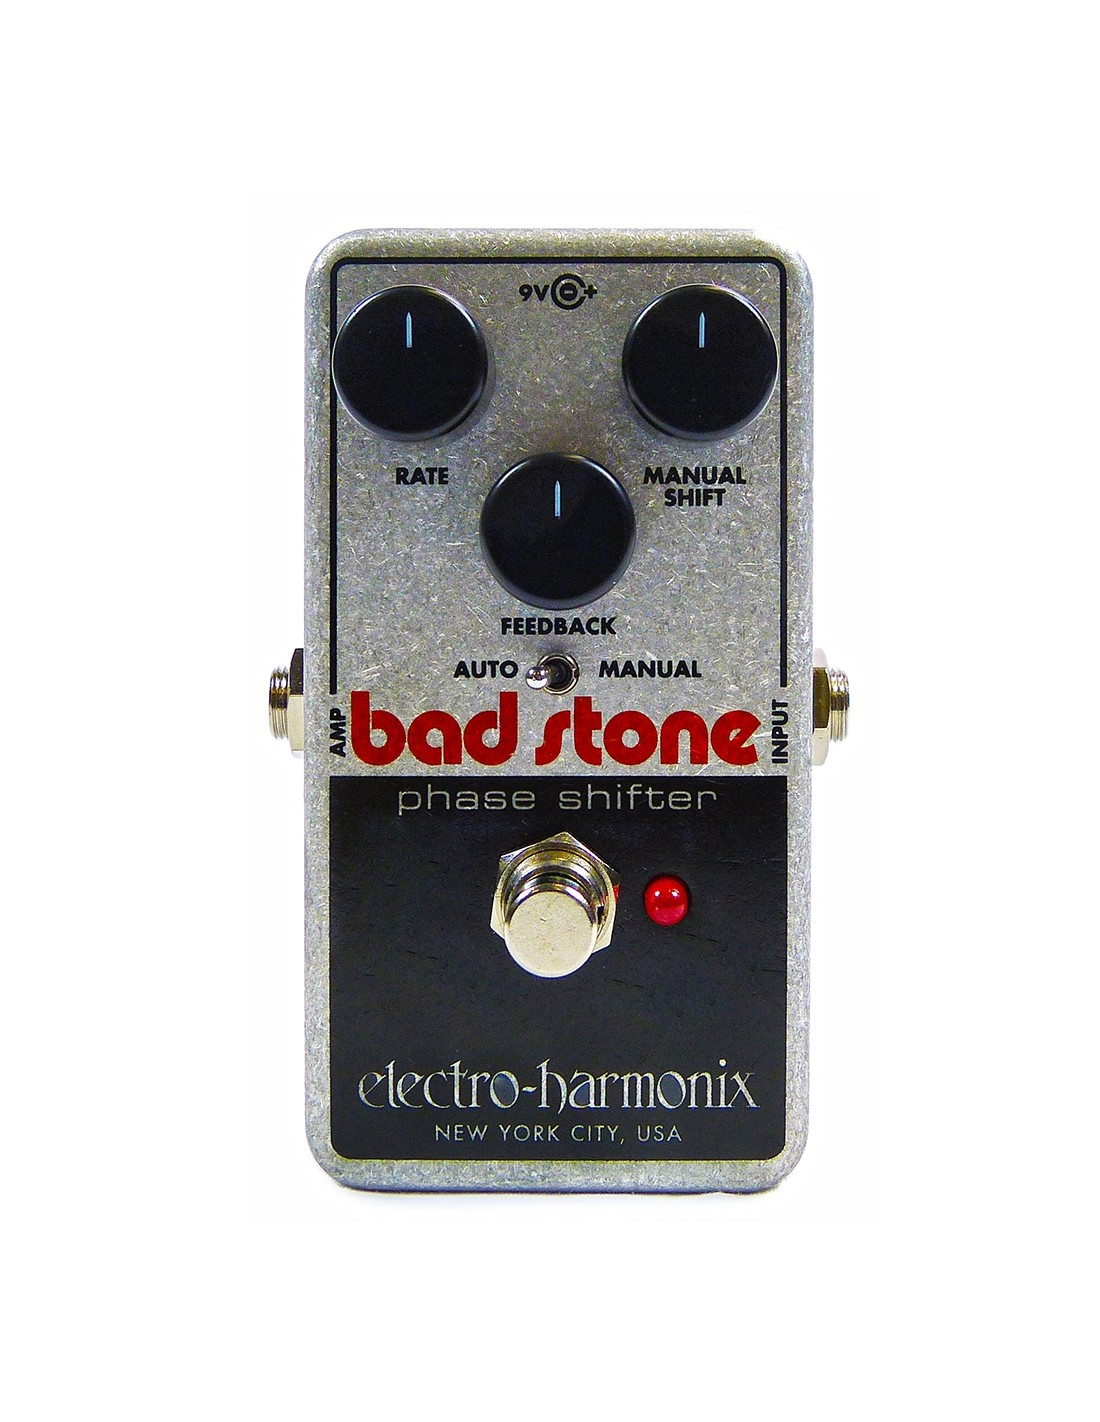 electro harmonix bad stone phase shifter guitar effects pedal. Black Bedroom Furniture Sets. Home Design Ideas